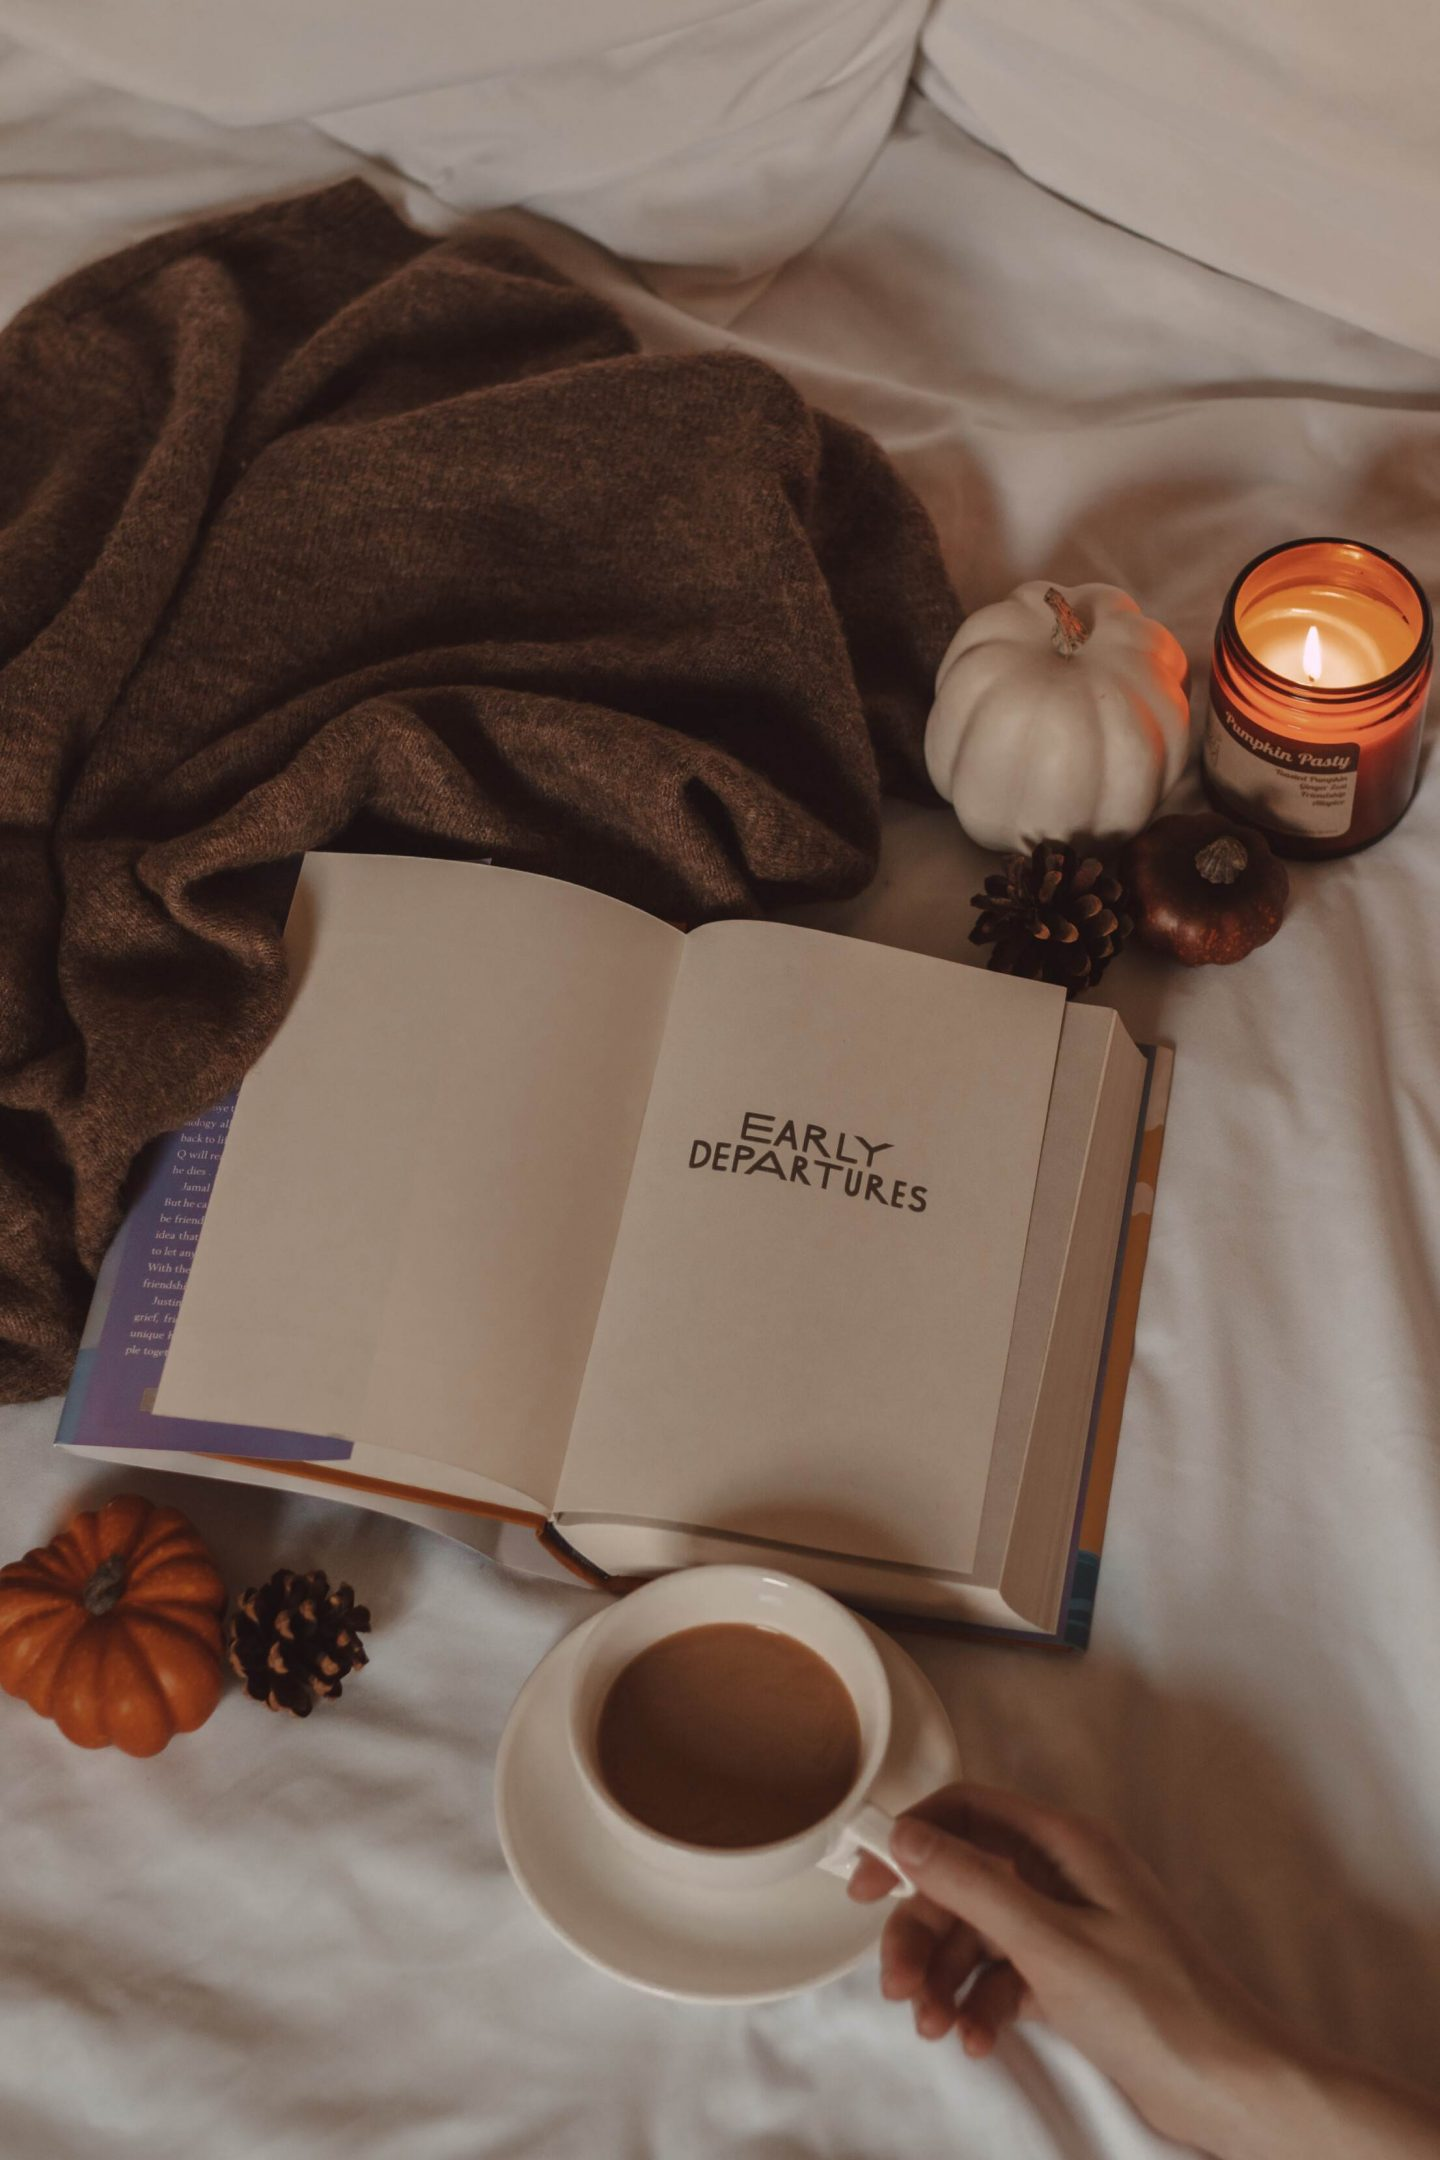 early departures book lying open with a mug of coffee, a sweater, mini pumpkins, and a lit candle